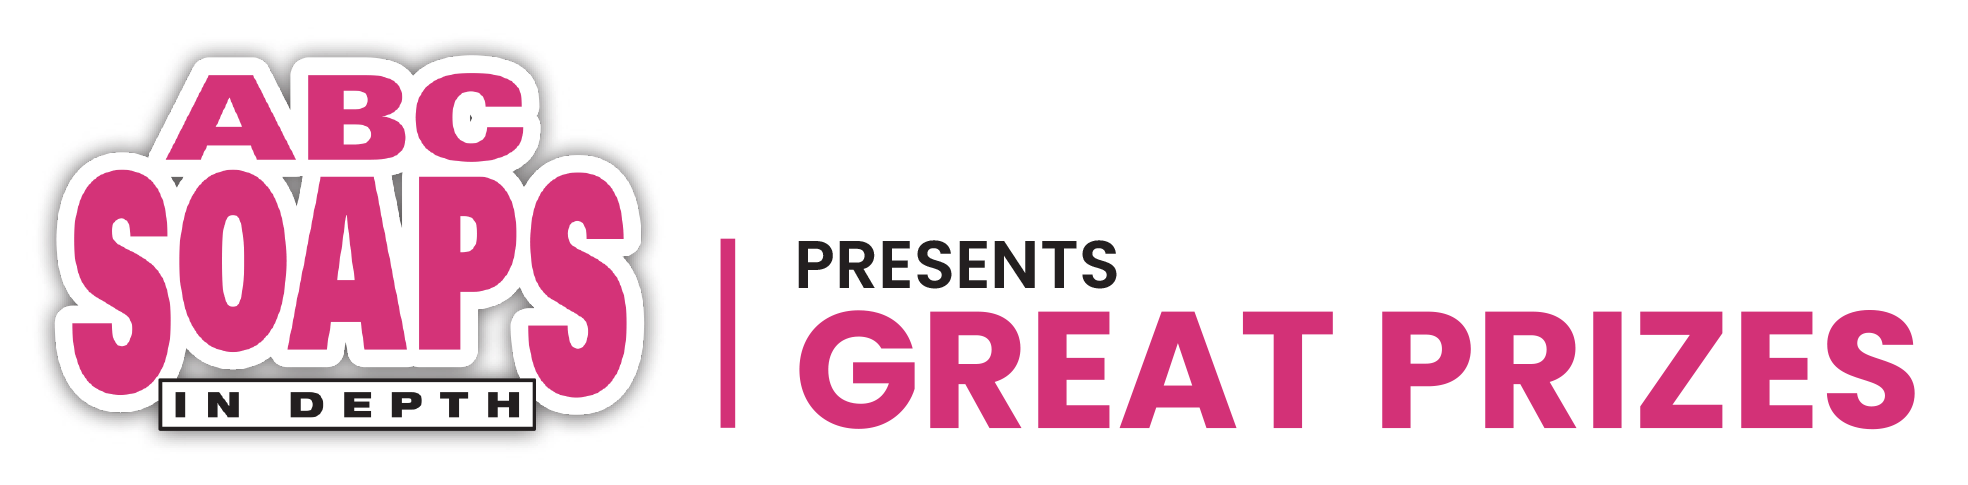 Abc great wins logo